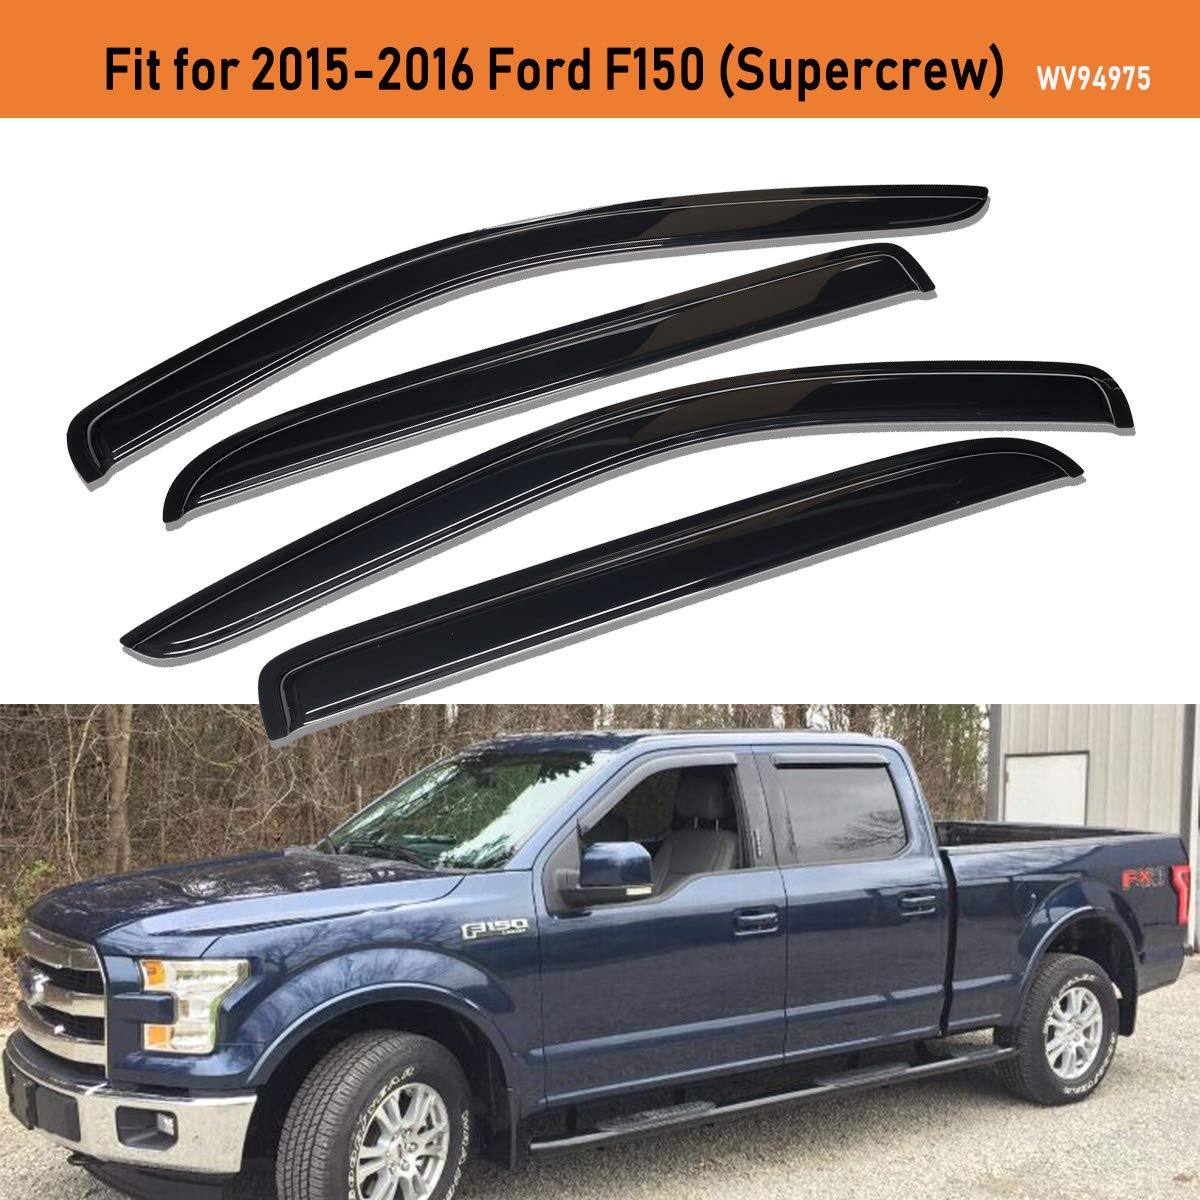 Lightronic F150 Window Vent Deflector WV94974 Rain Guards 4 Piece Set for 2015-2016 Ford F150 Supercab